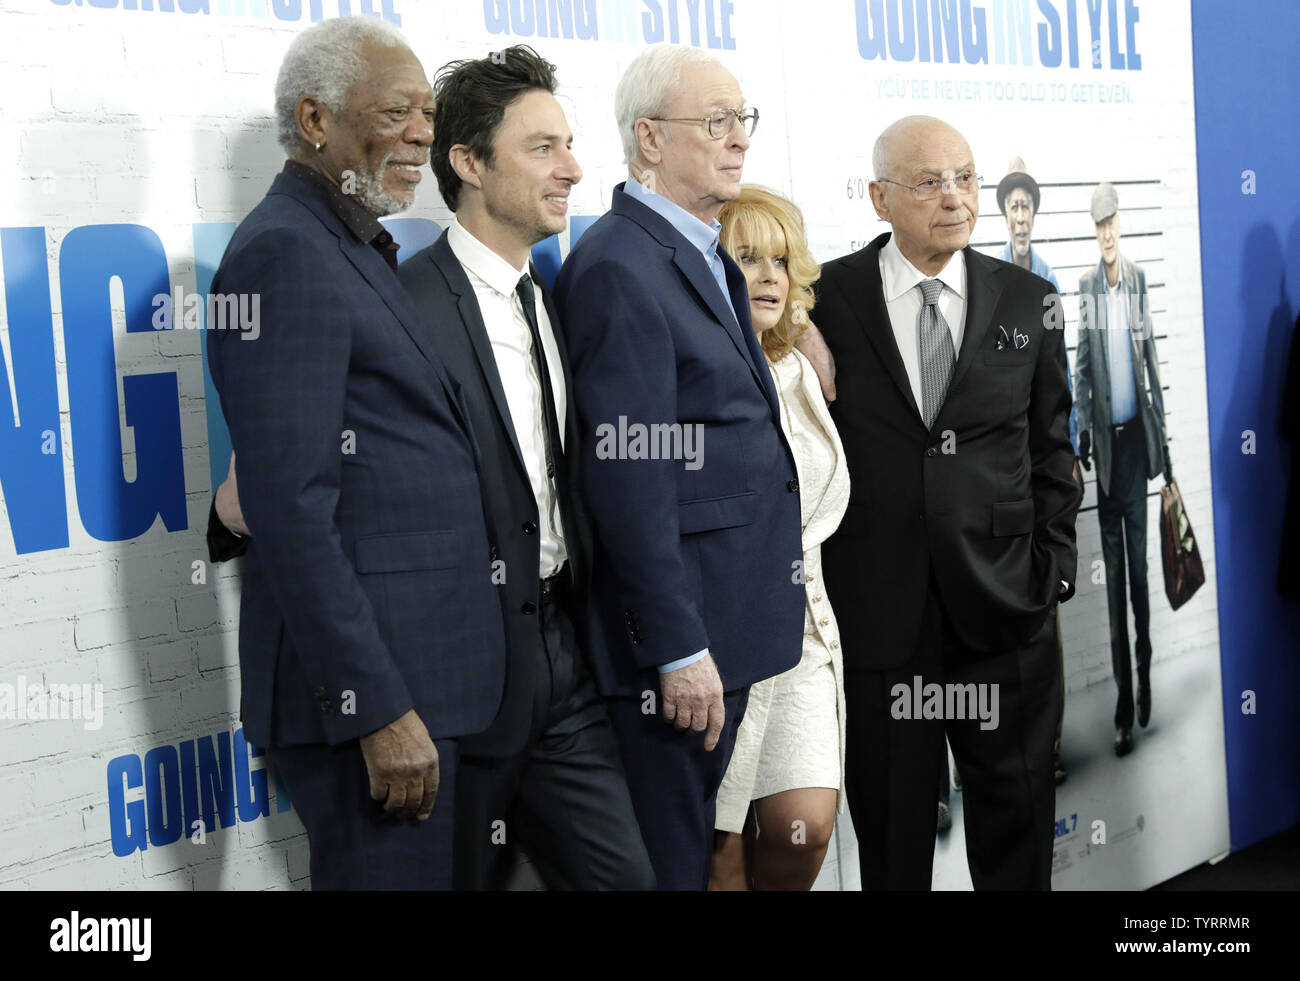 Morgan Freeman, Zach Braff, Michael Caine, Ann-Margaret and Alan Arkin arrive on the red carpet at the 'Going in Style' World Premiere at SVA Theatre on March 30, 2017 in New York City.    Photo by John Angelillo/UPI - Stock Image